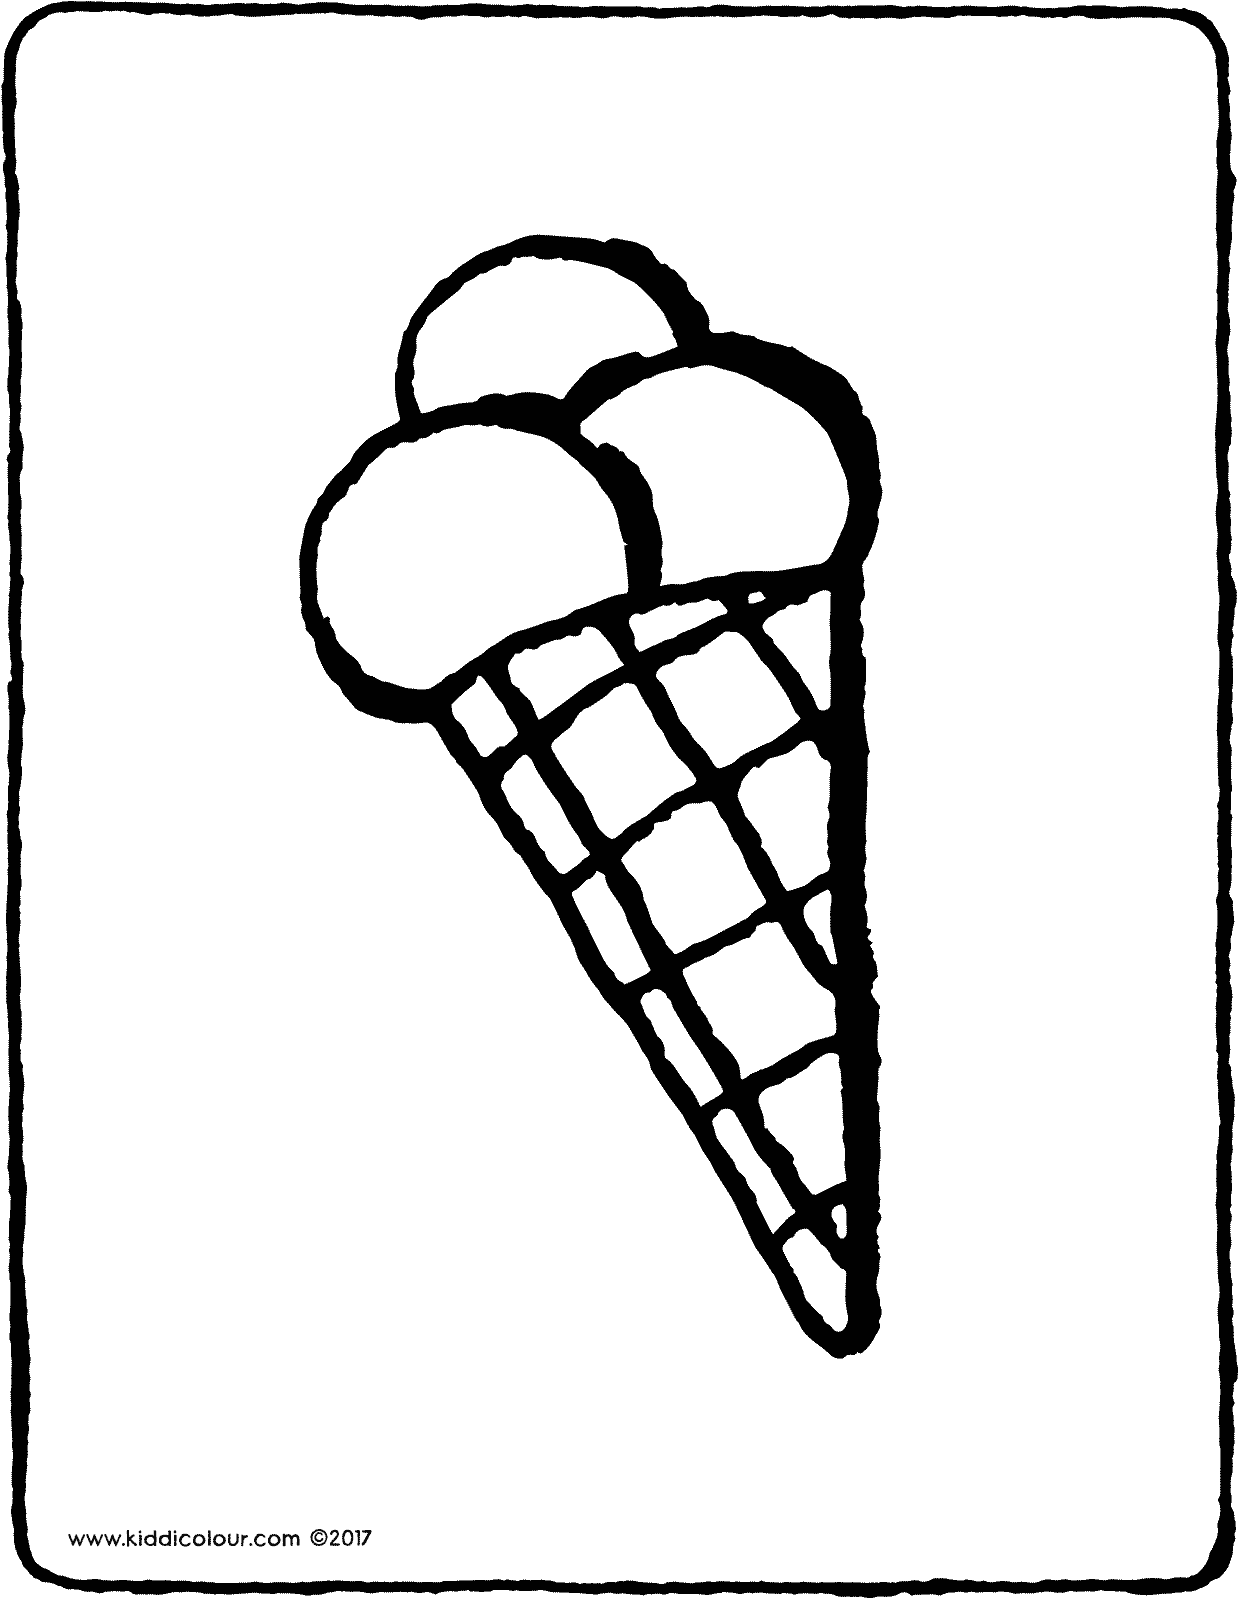 ice-cream cone colouring page drawing picture 01V